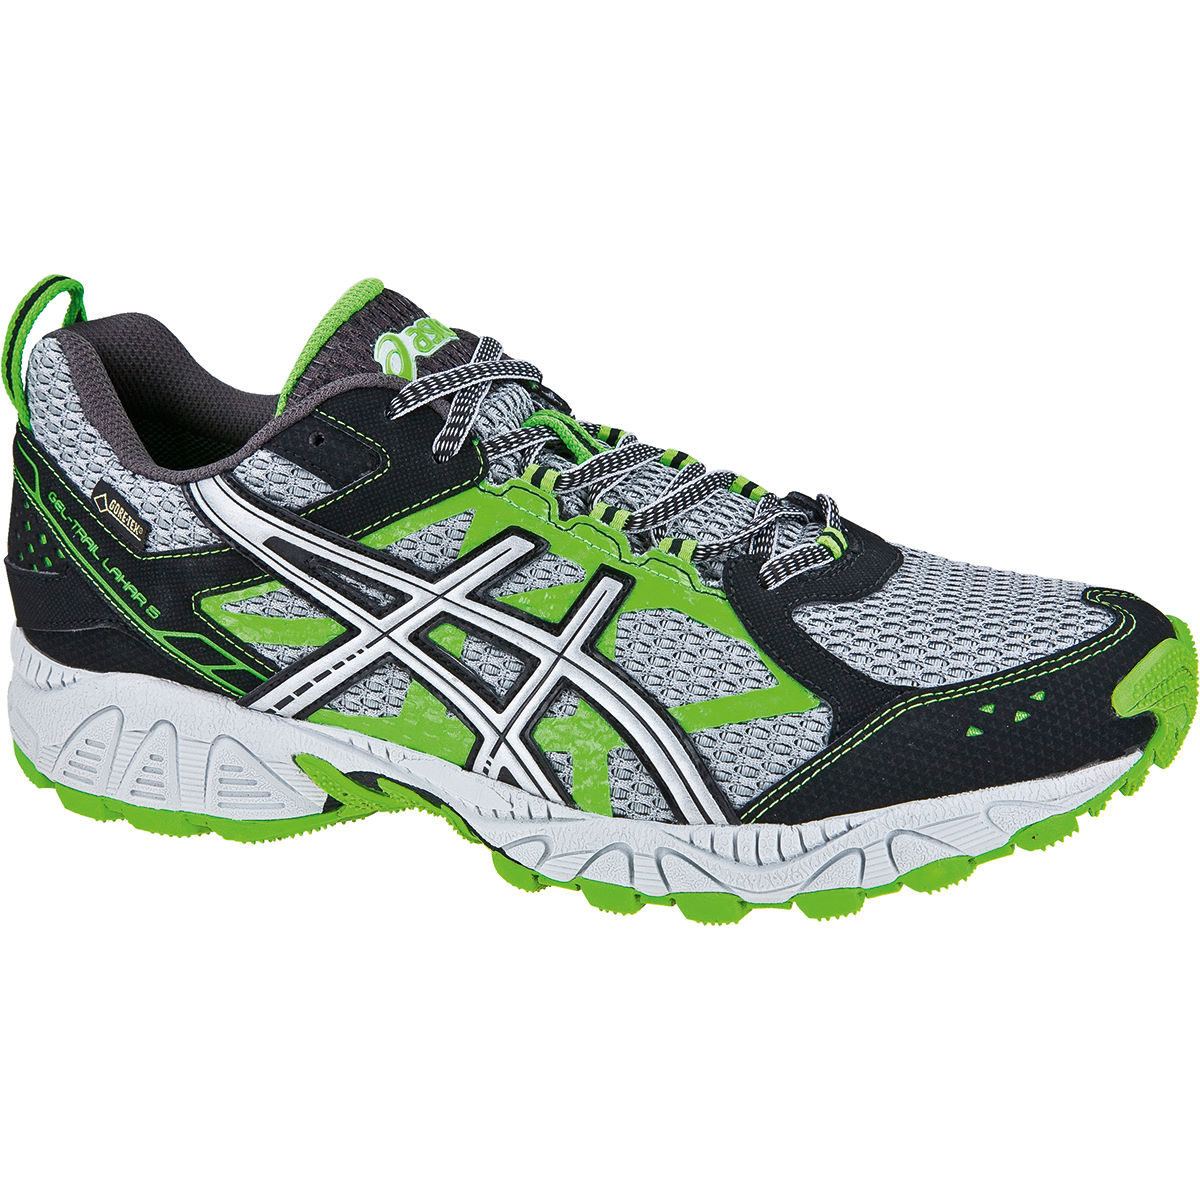 Zapatillas asics running 2014 zapatillas running asics gel - Asics Gel Trail Lahar 5 Gore Tex Shoes Aw13